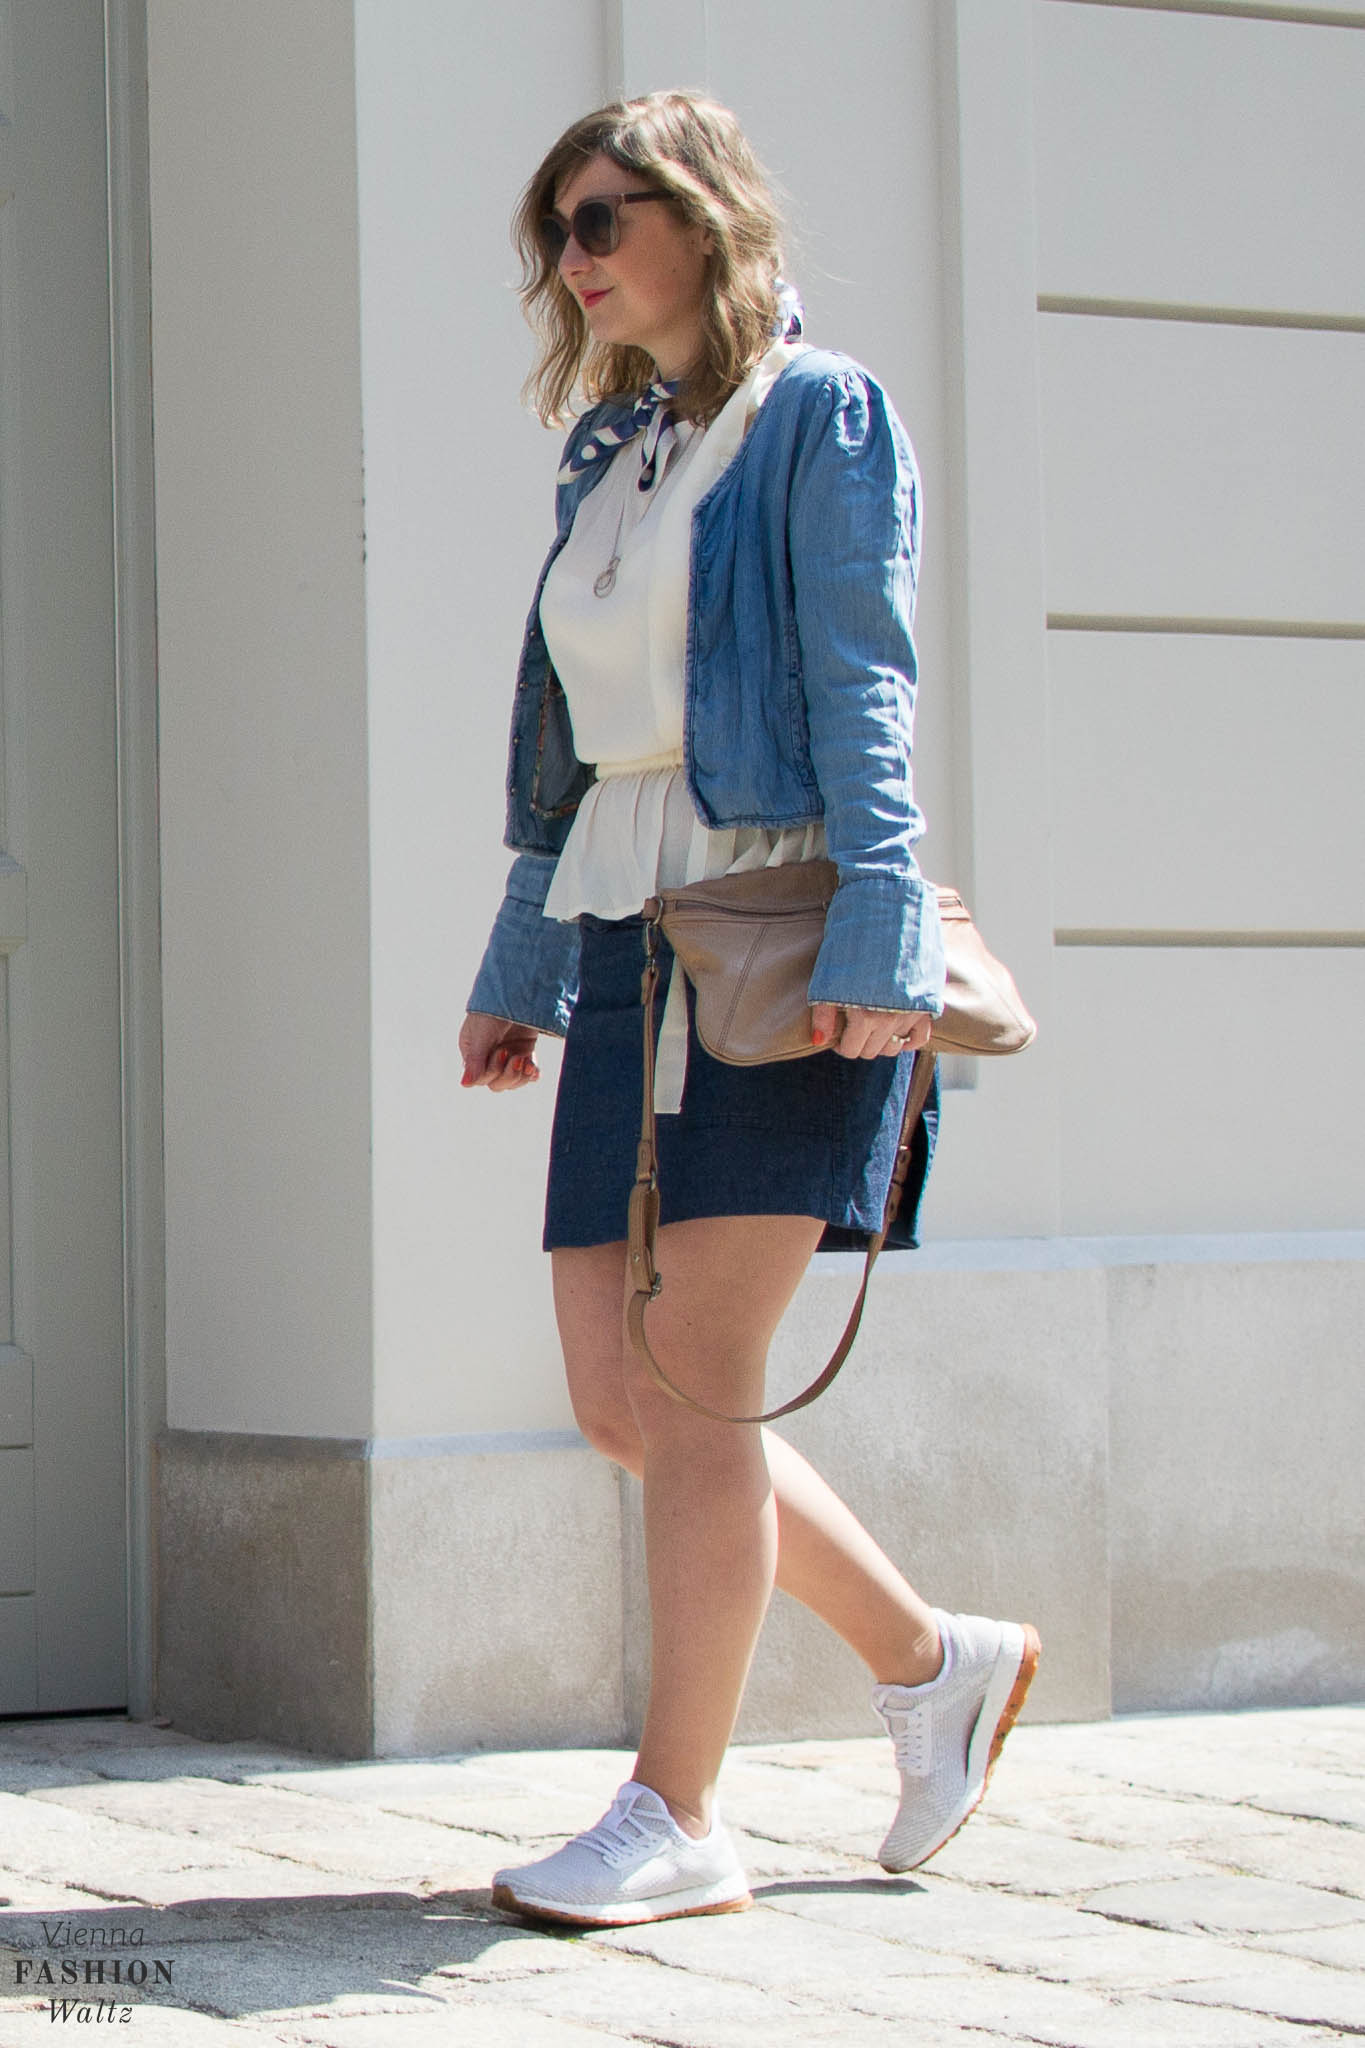 Denim Fashion Trends, Denim on Denim, Denim All Over, Jeans Jacket, Denim Skirt, Adidas Pure Boost